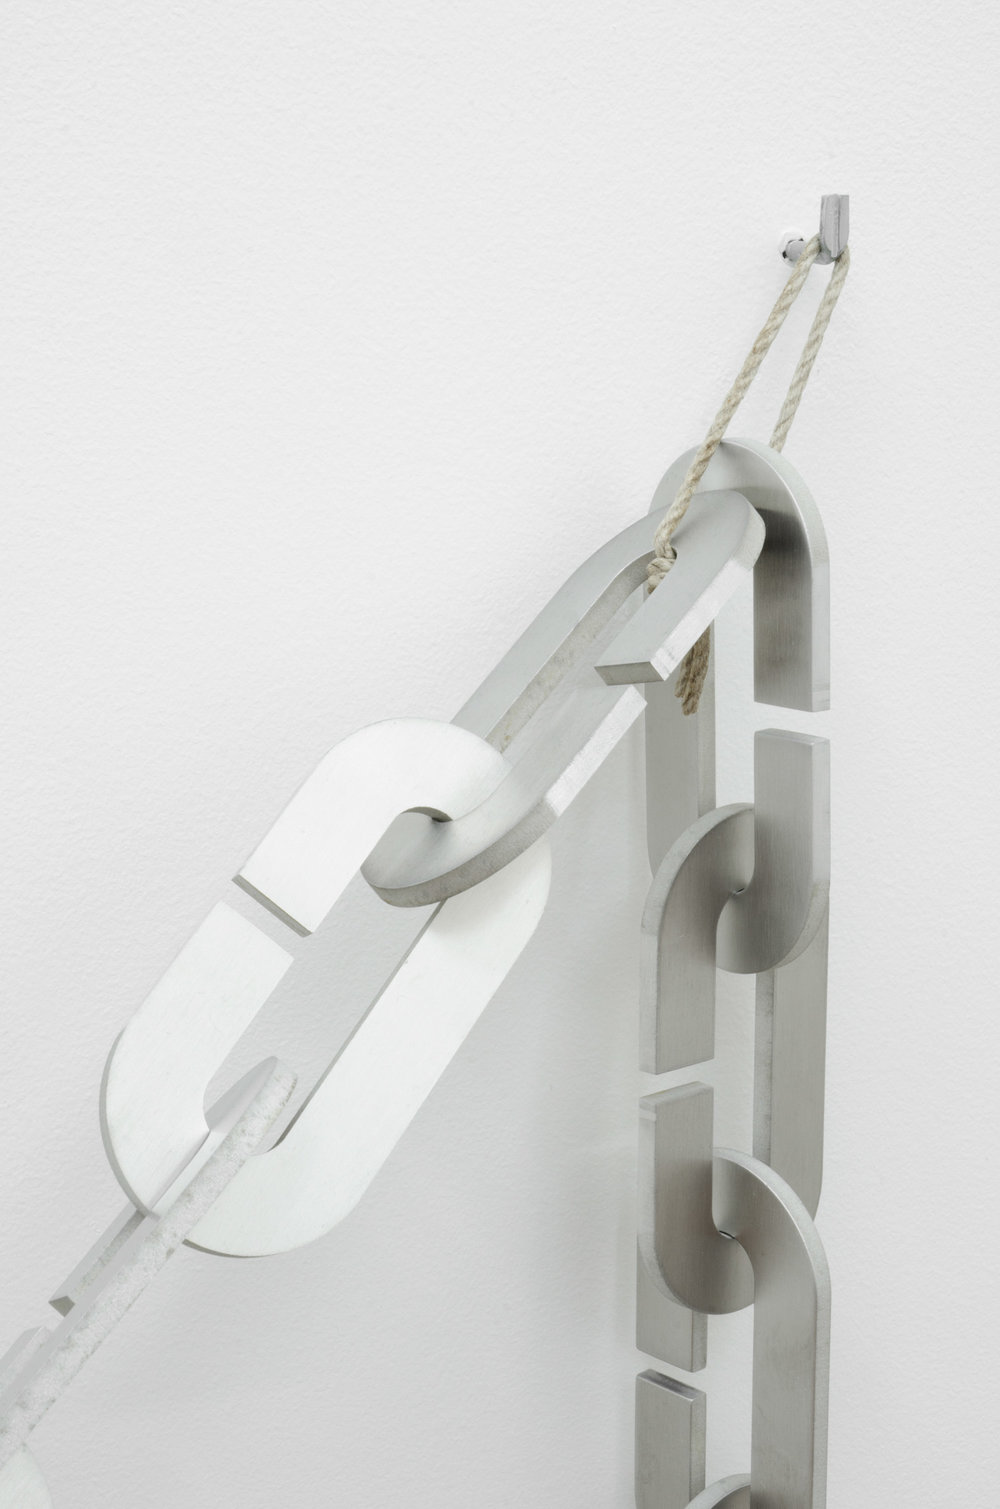 Harald Klingelhöller, Streets After the Rain, 2012, aluminium and anodised aluminium, 120 x 500 x 135 cm (detail).